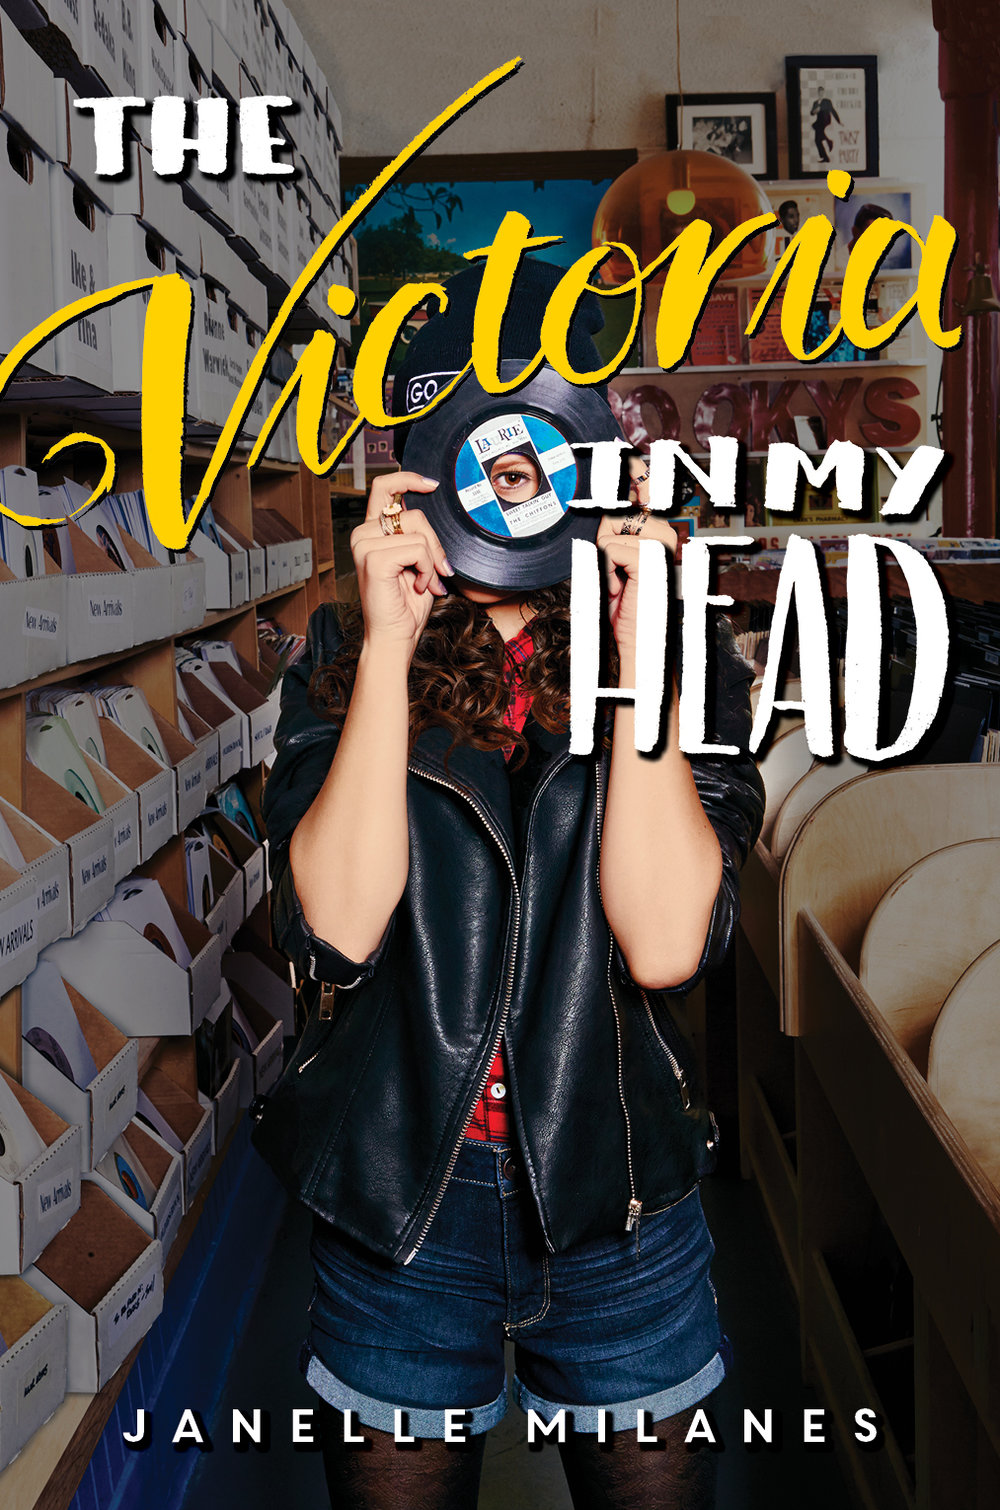 A shy, rule-following teen winds up joining a local rock band in this laugh-out-loud, heartfelt coming-of-age novel.Victoria Cruz inhabits two worlds: In one, she is a rock star, thrashing the stage with her husky voice and purple-streaked hair. In the other, currently serving as her reality, Victoria is a shy teenager with overprotective Cuban parents, who sleepwalks through her life at the prestigious Evanston Academy. Unable to overcome the whole paralyzing-stage-fright thing, Victoria settles for living inside her fantasies, where nothing can go wrong and everything is set to her expertly crafted music playlists. -